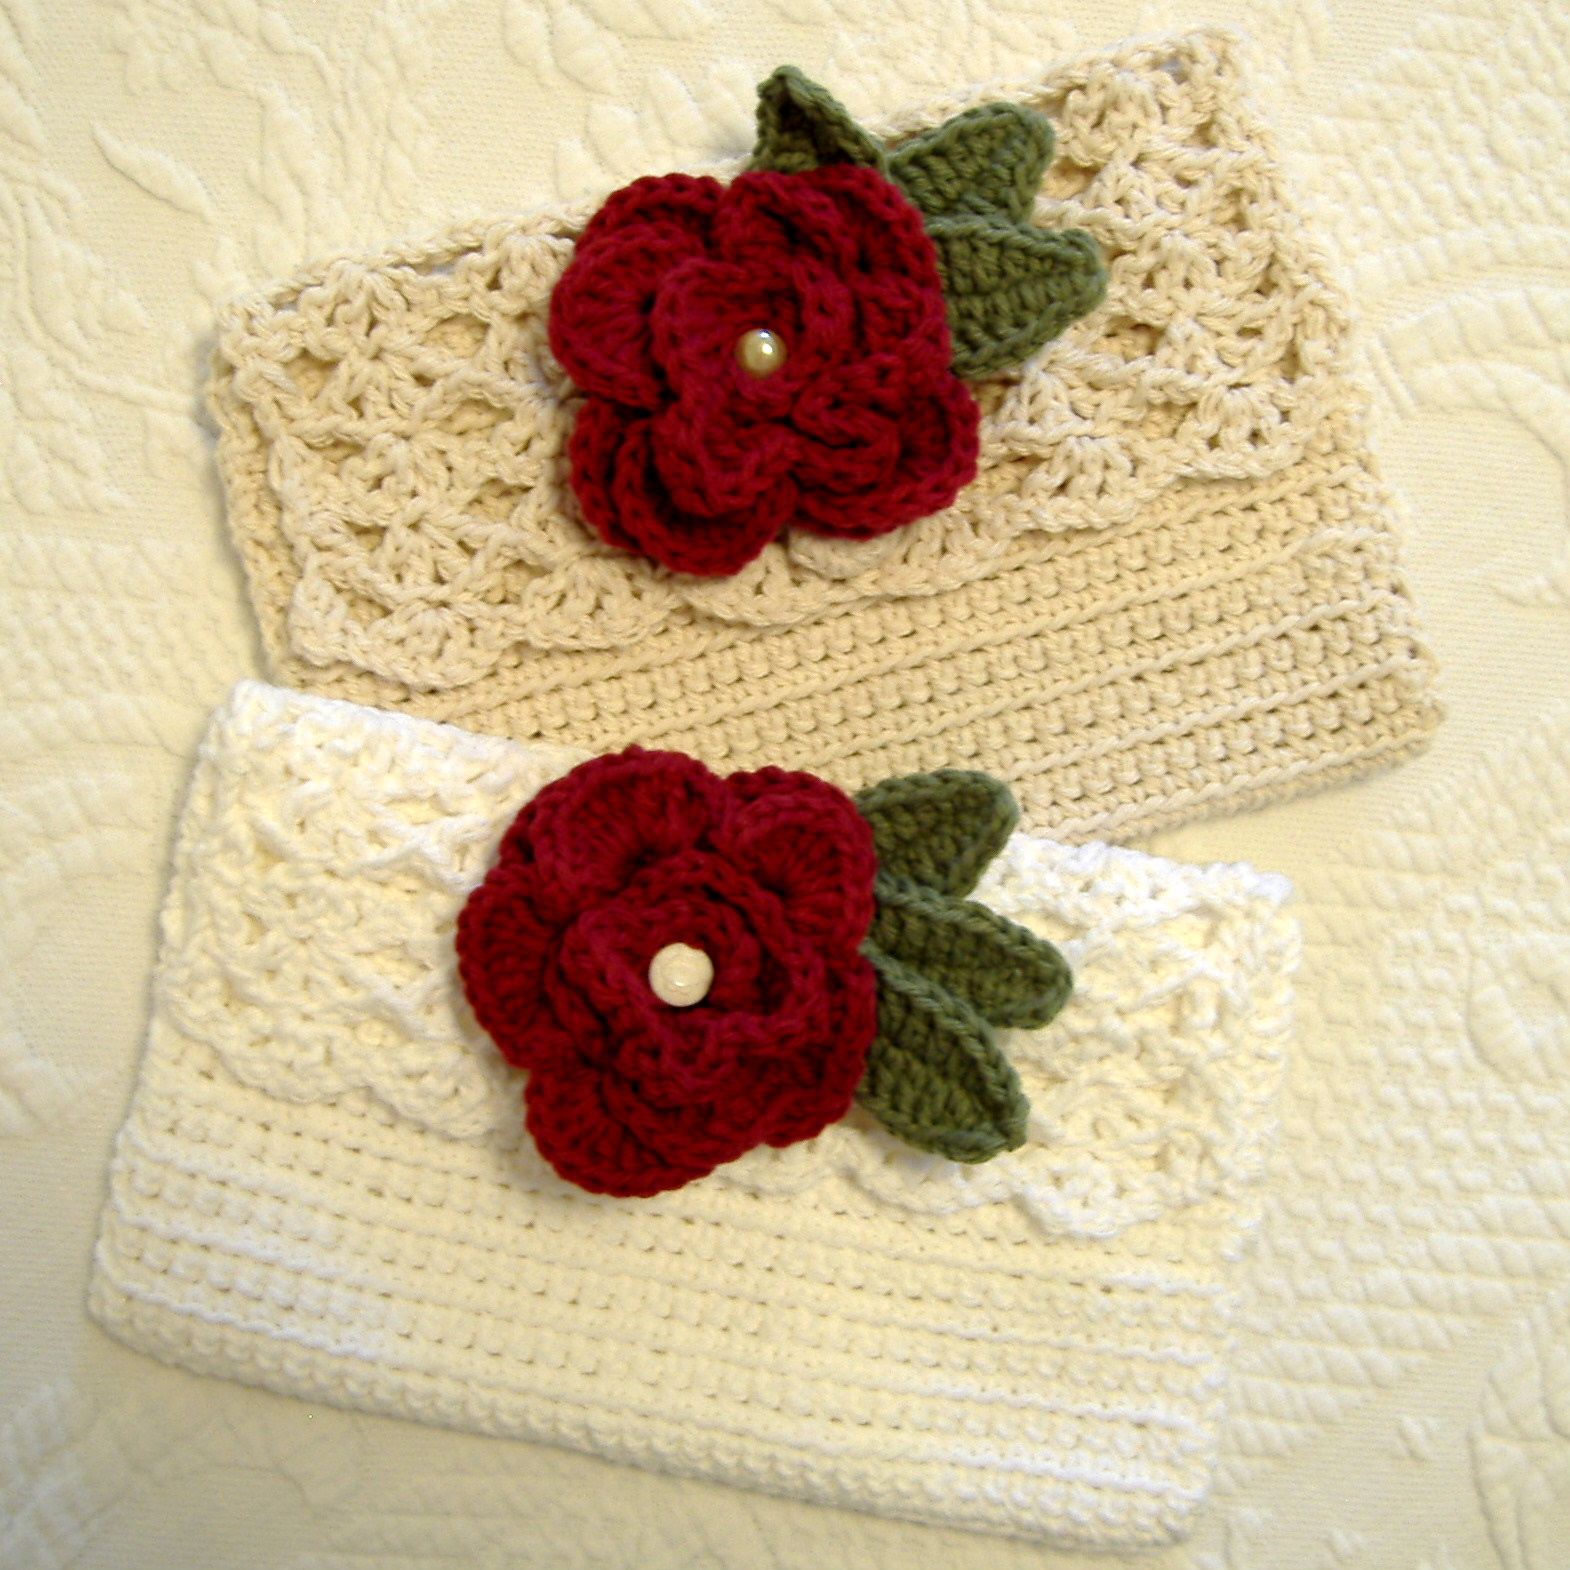 Free Crochet Bag Patterns: Crochet Bags with Crochet Me - Crochet ...